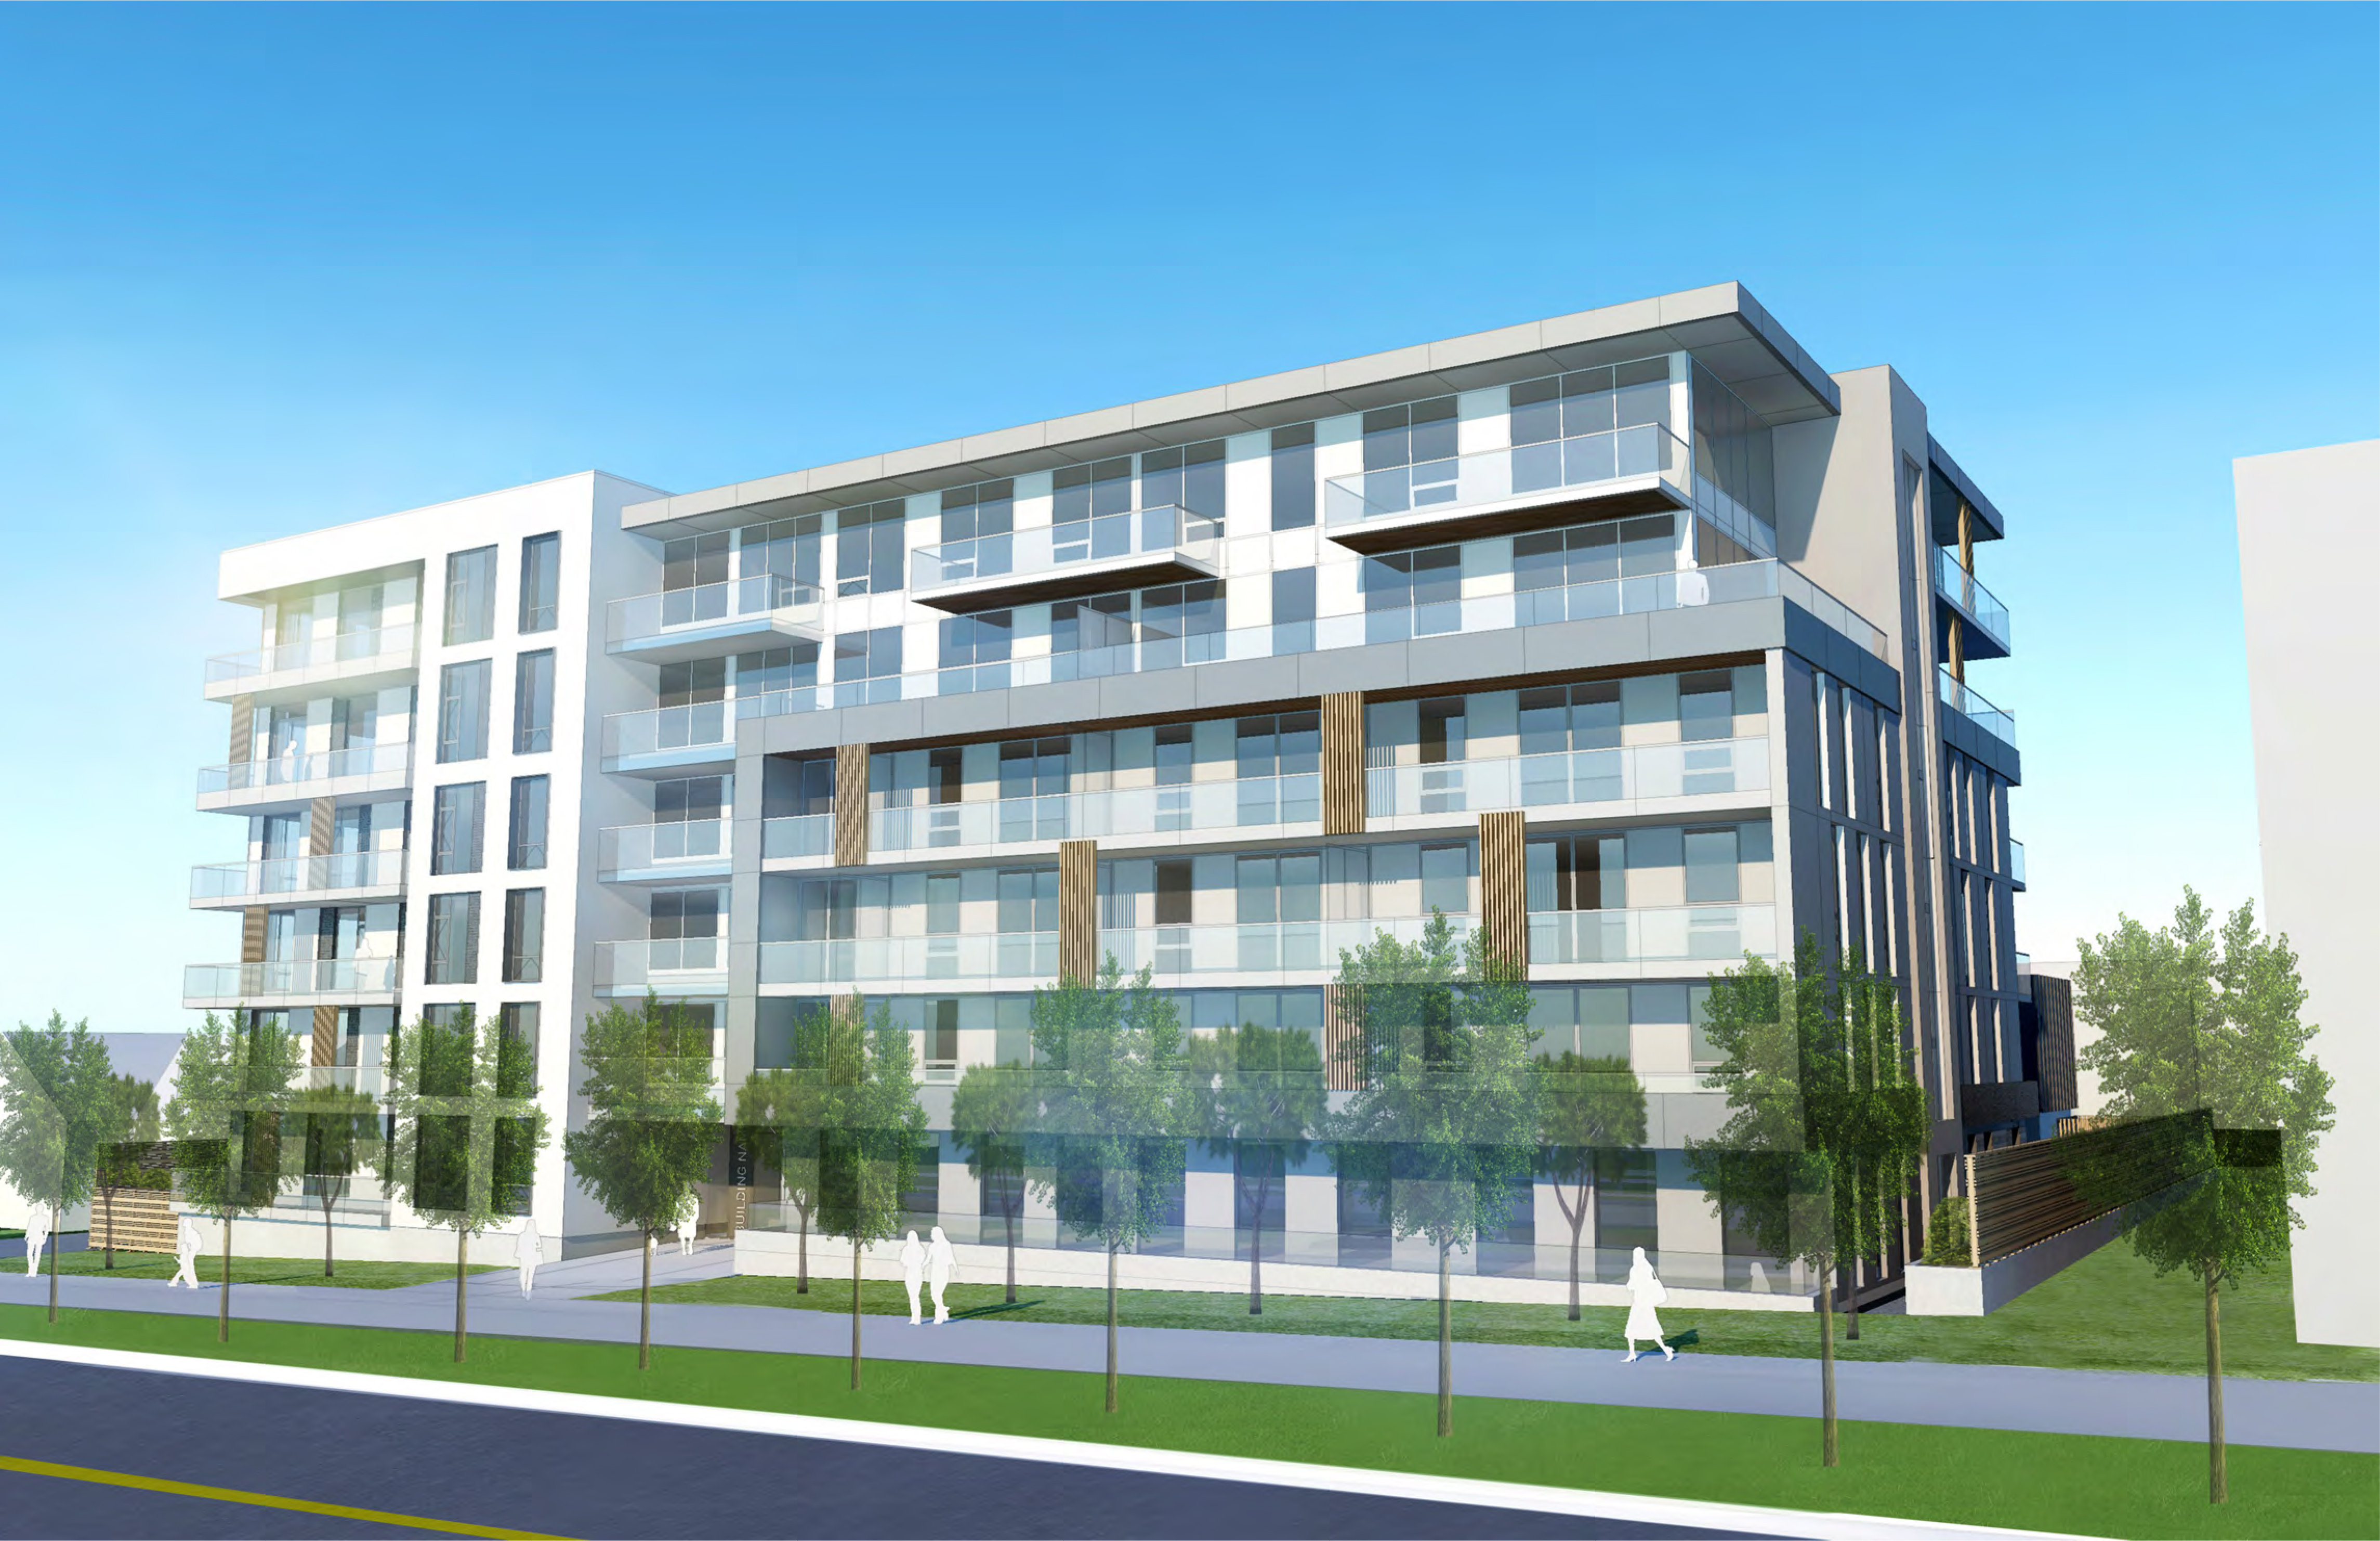 Building Exterior - 6829 Cambie St, Vancouver, BC V6P 3H1, Canada!